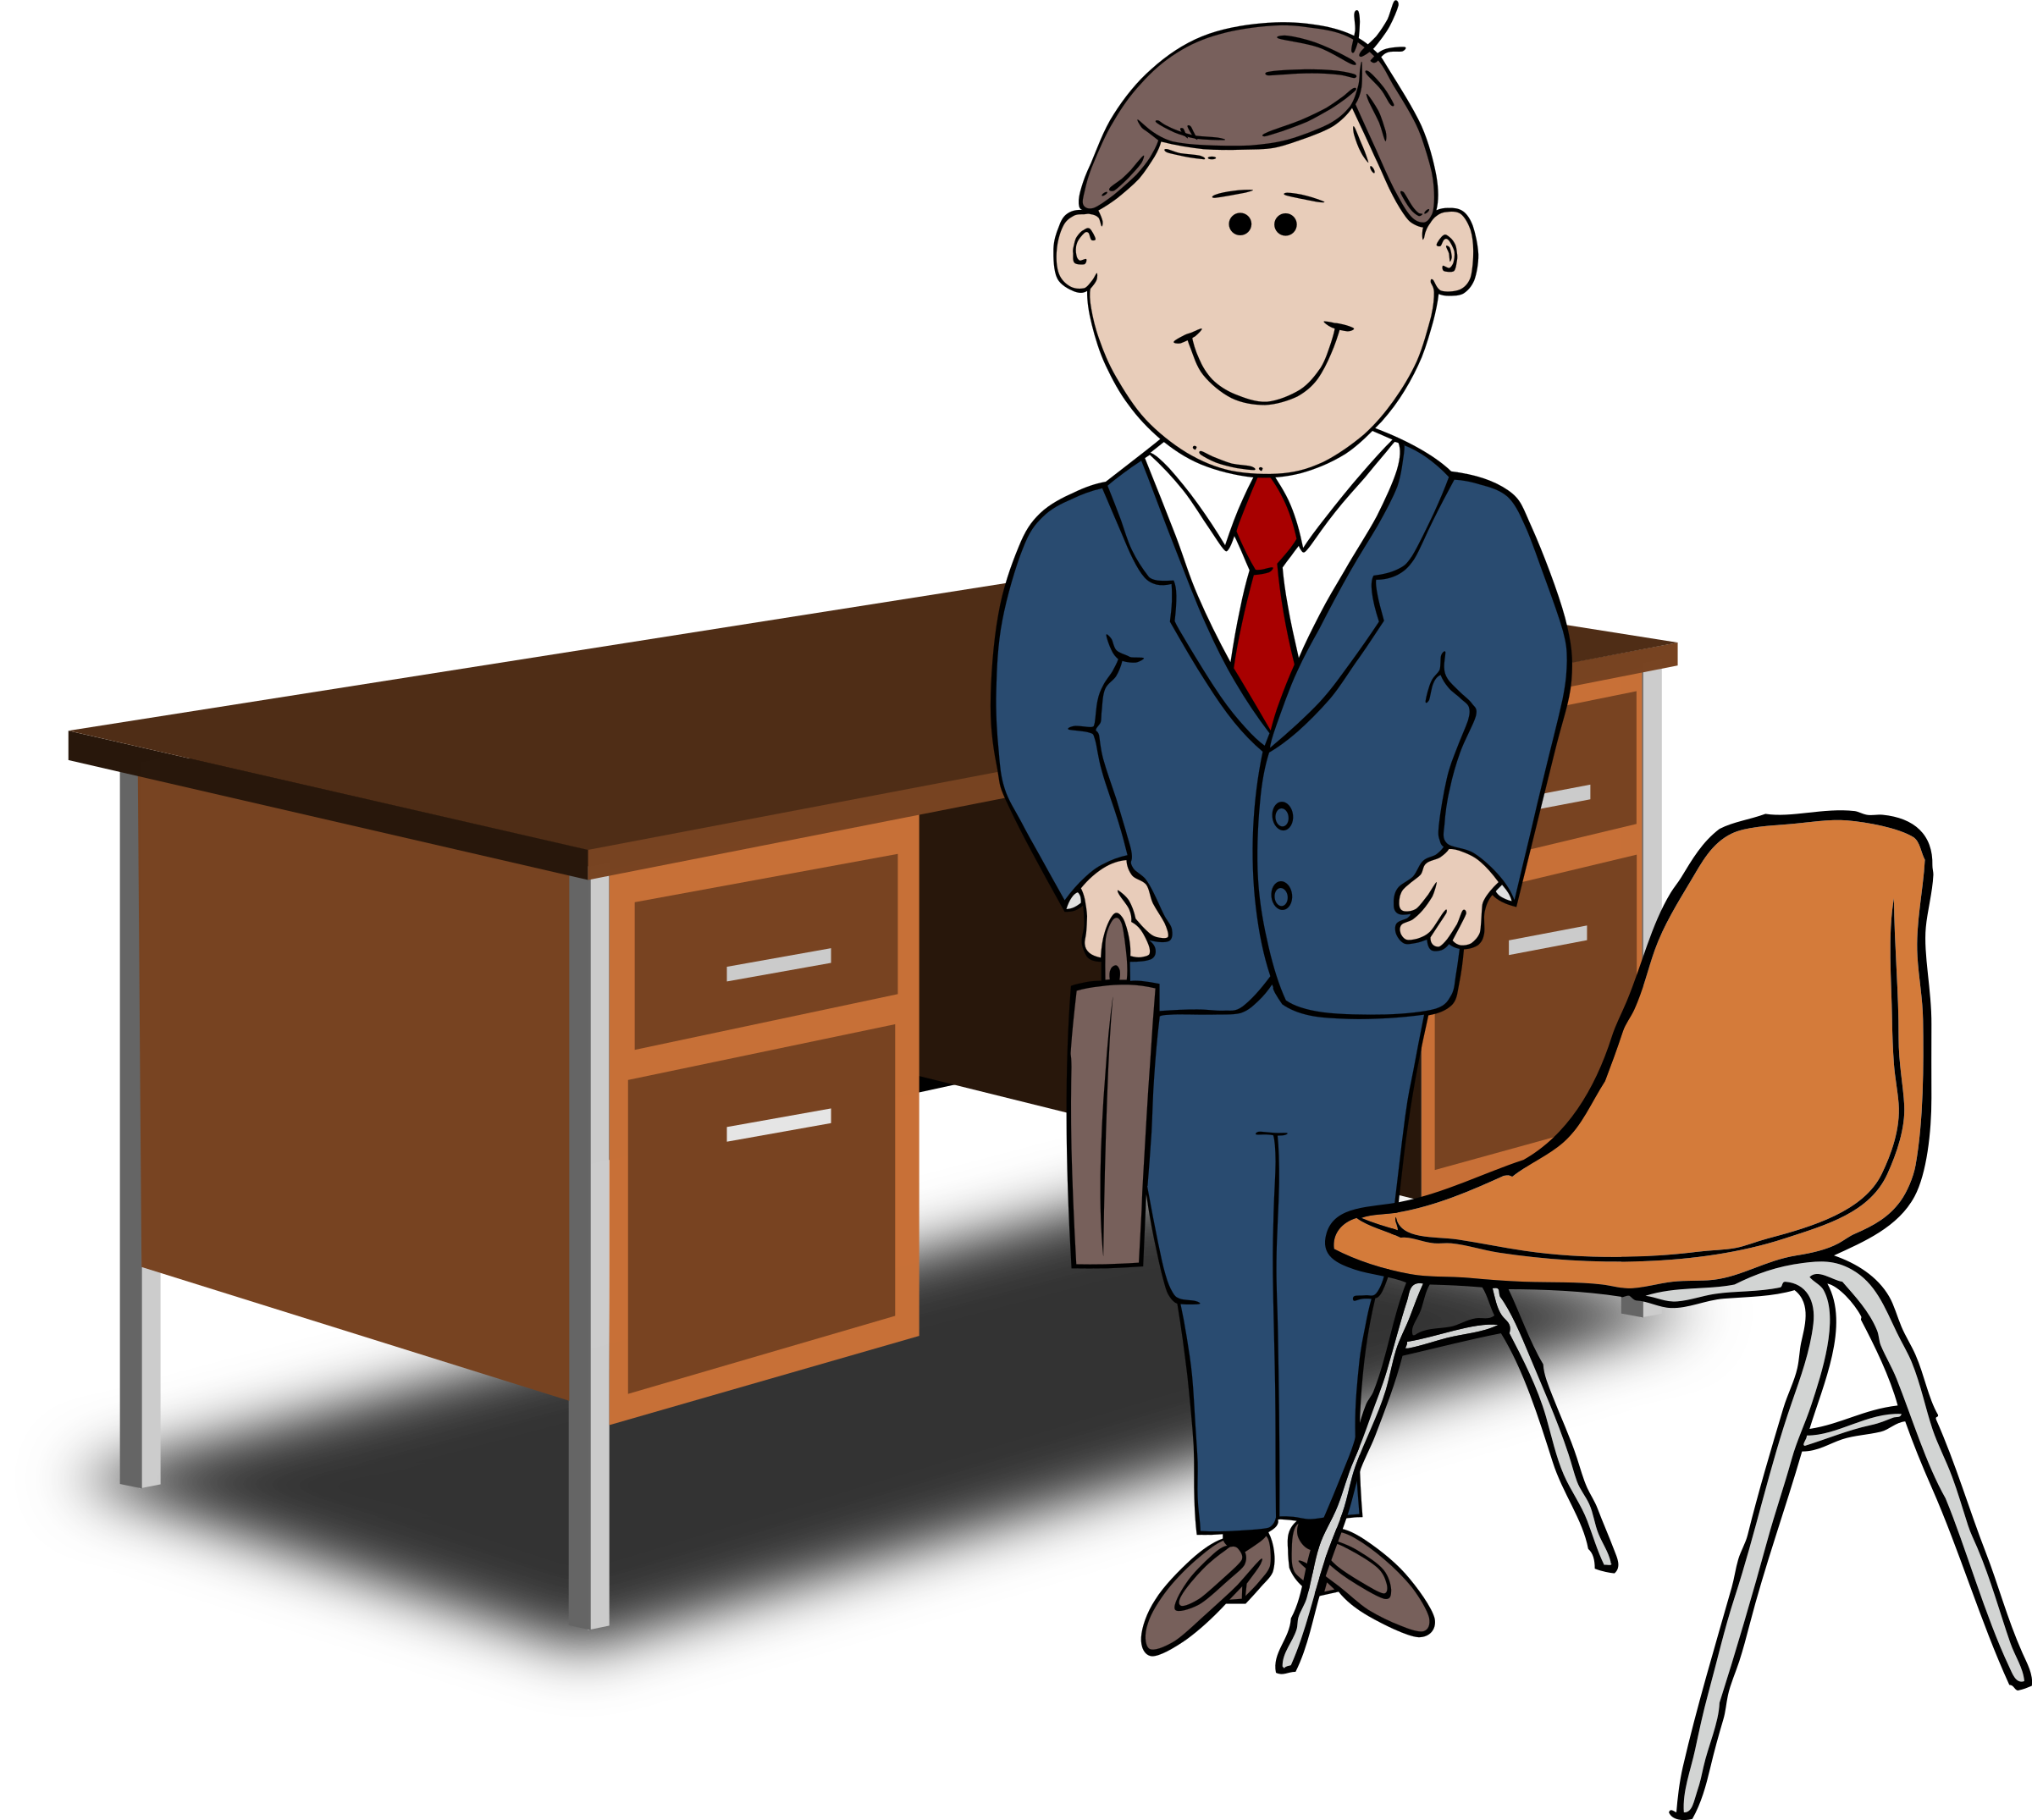 Clip Art Teacher Desk Clipart - teacher / manager